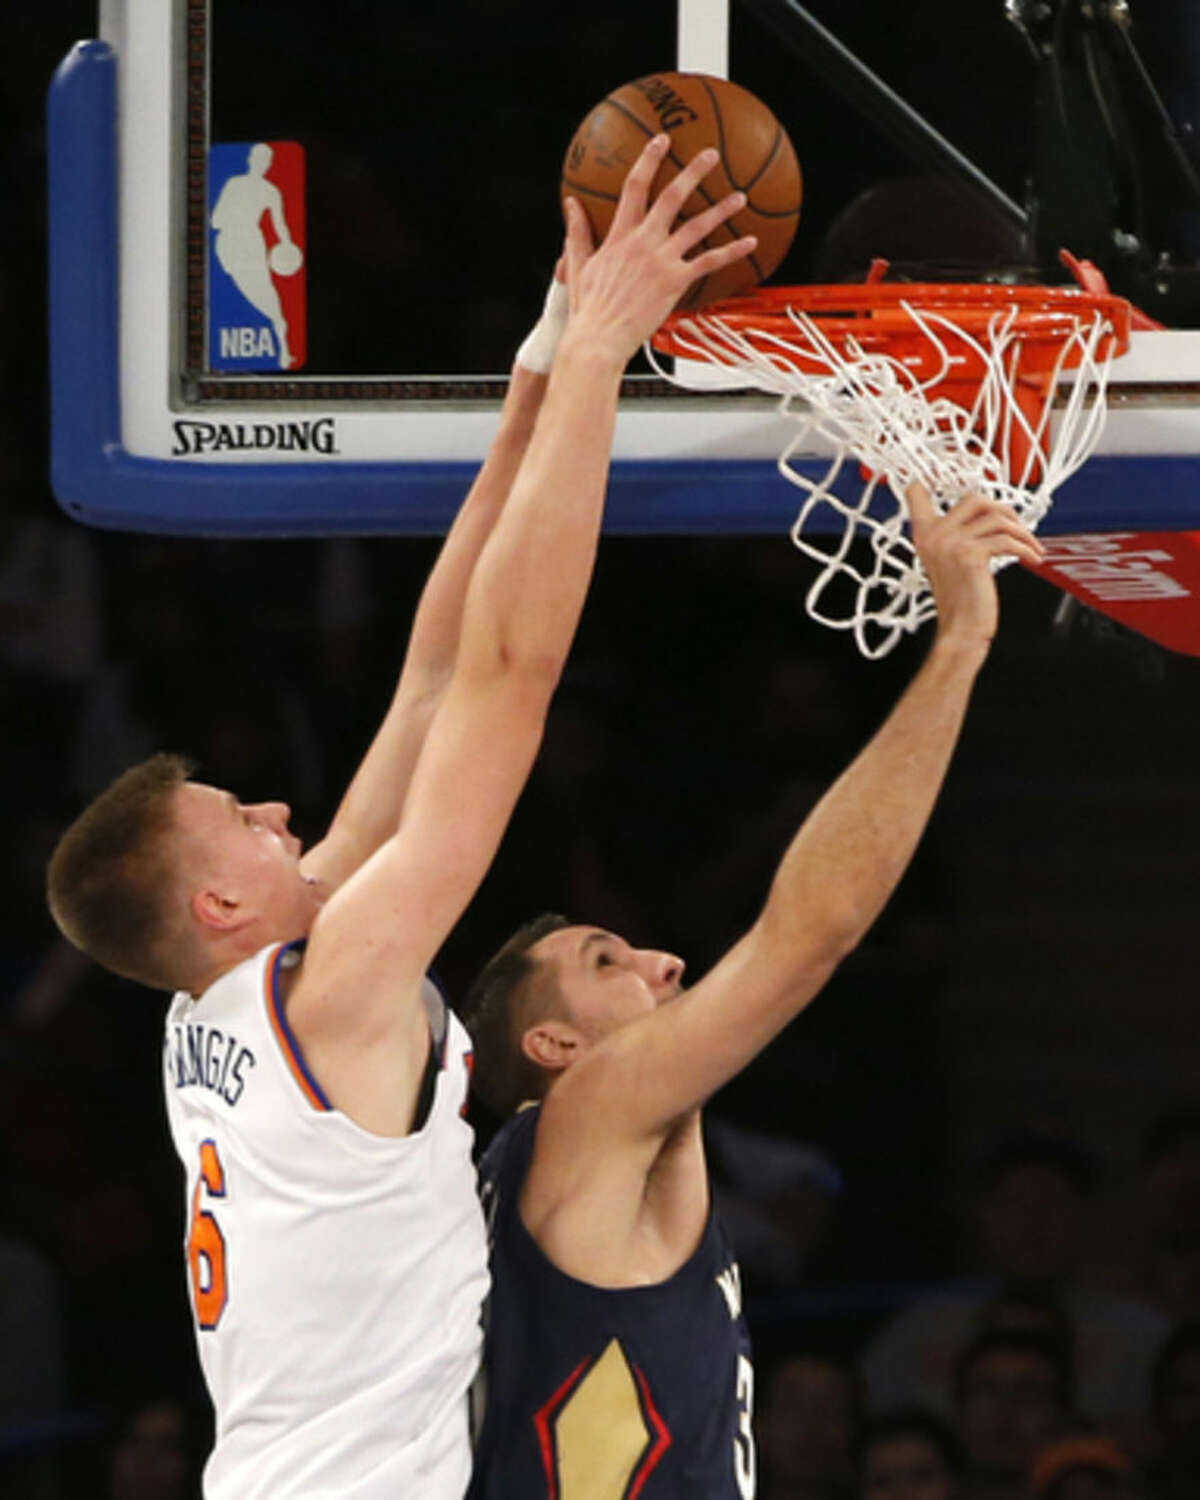 New York Knicks forward Kristaps Porzingis (6) tries to score as New Orleans Pelicans forward Ryan Anderson (33) defends in the first half of an NBA basketball game at Madison Square Garden in New York, Sunday, Nov. 15, 2015. (AP Photo/Kathy Willens)